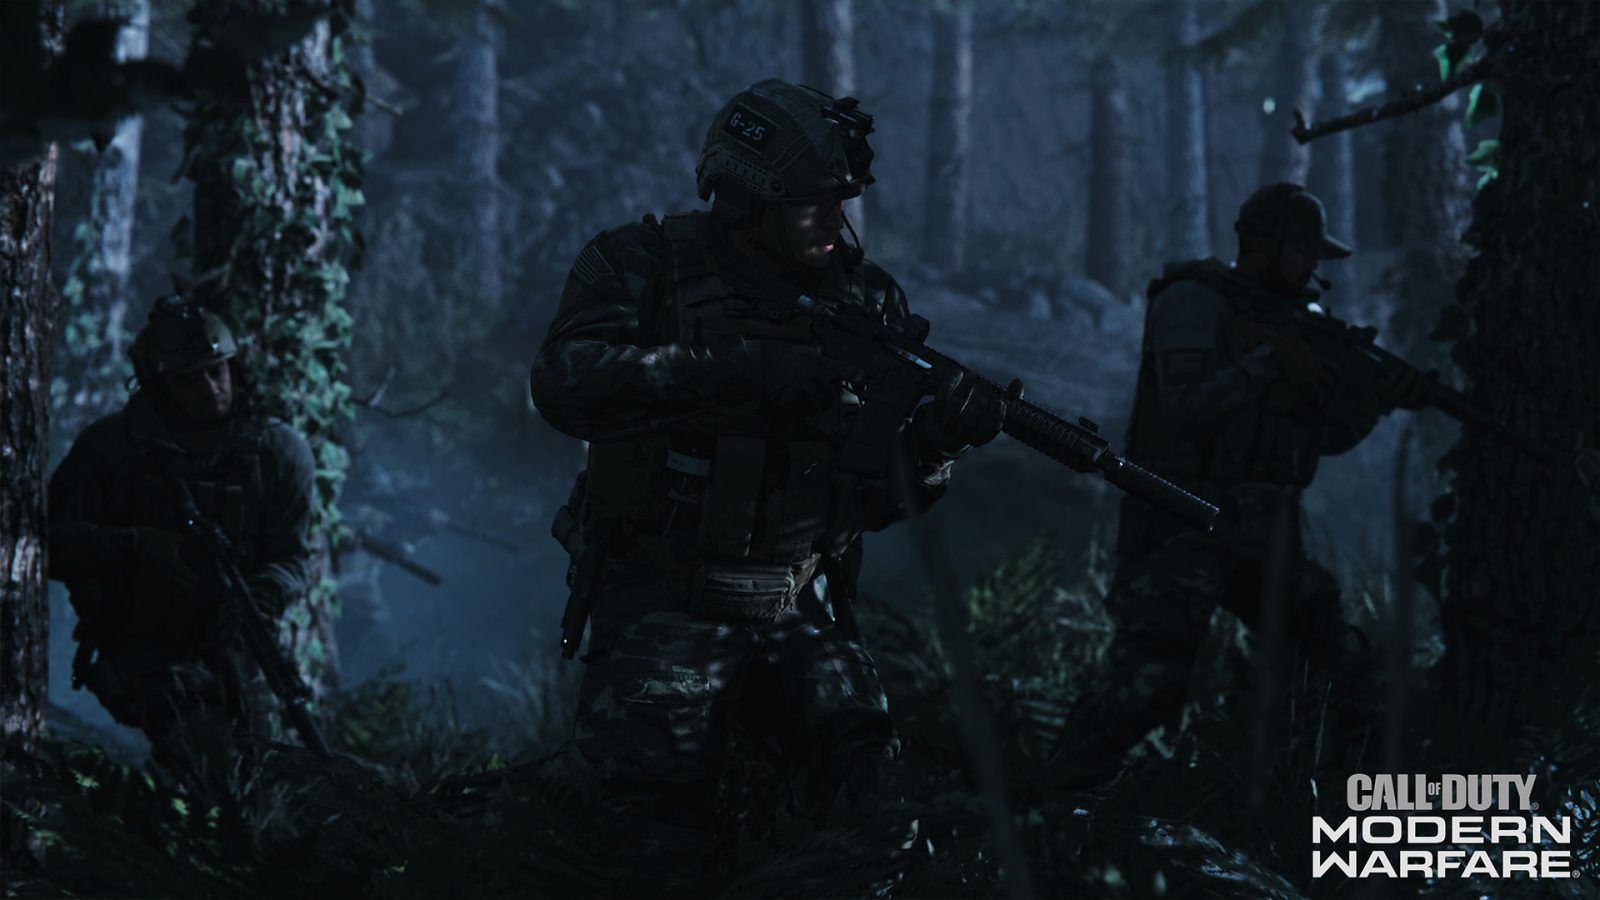 Call Of Duty Modern Warfare 24 Hours In Campaign Reigns King